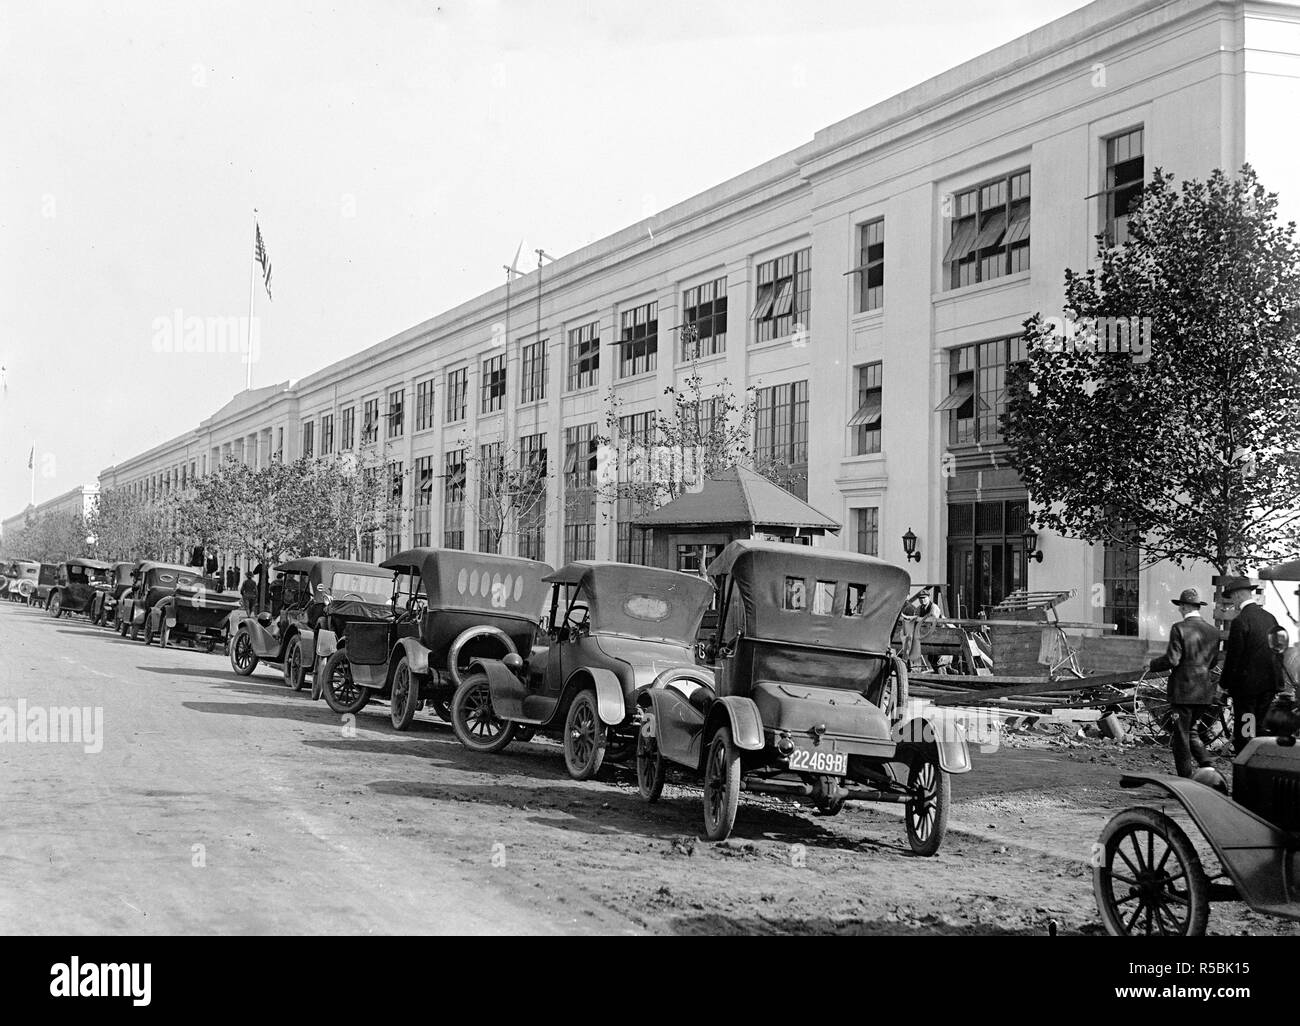 Cars parked in front of a government building in Washington D.C. ca. 1917-1919 - Stock Image